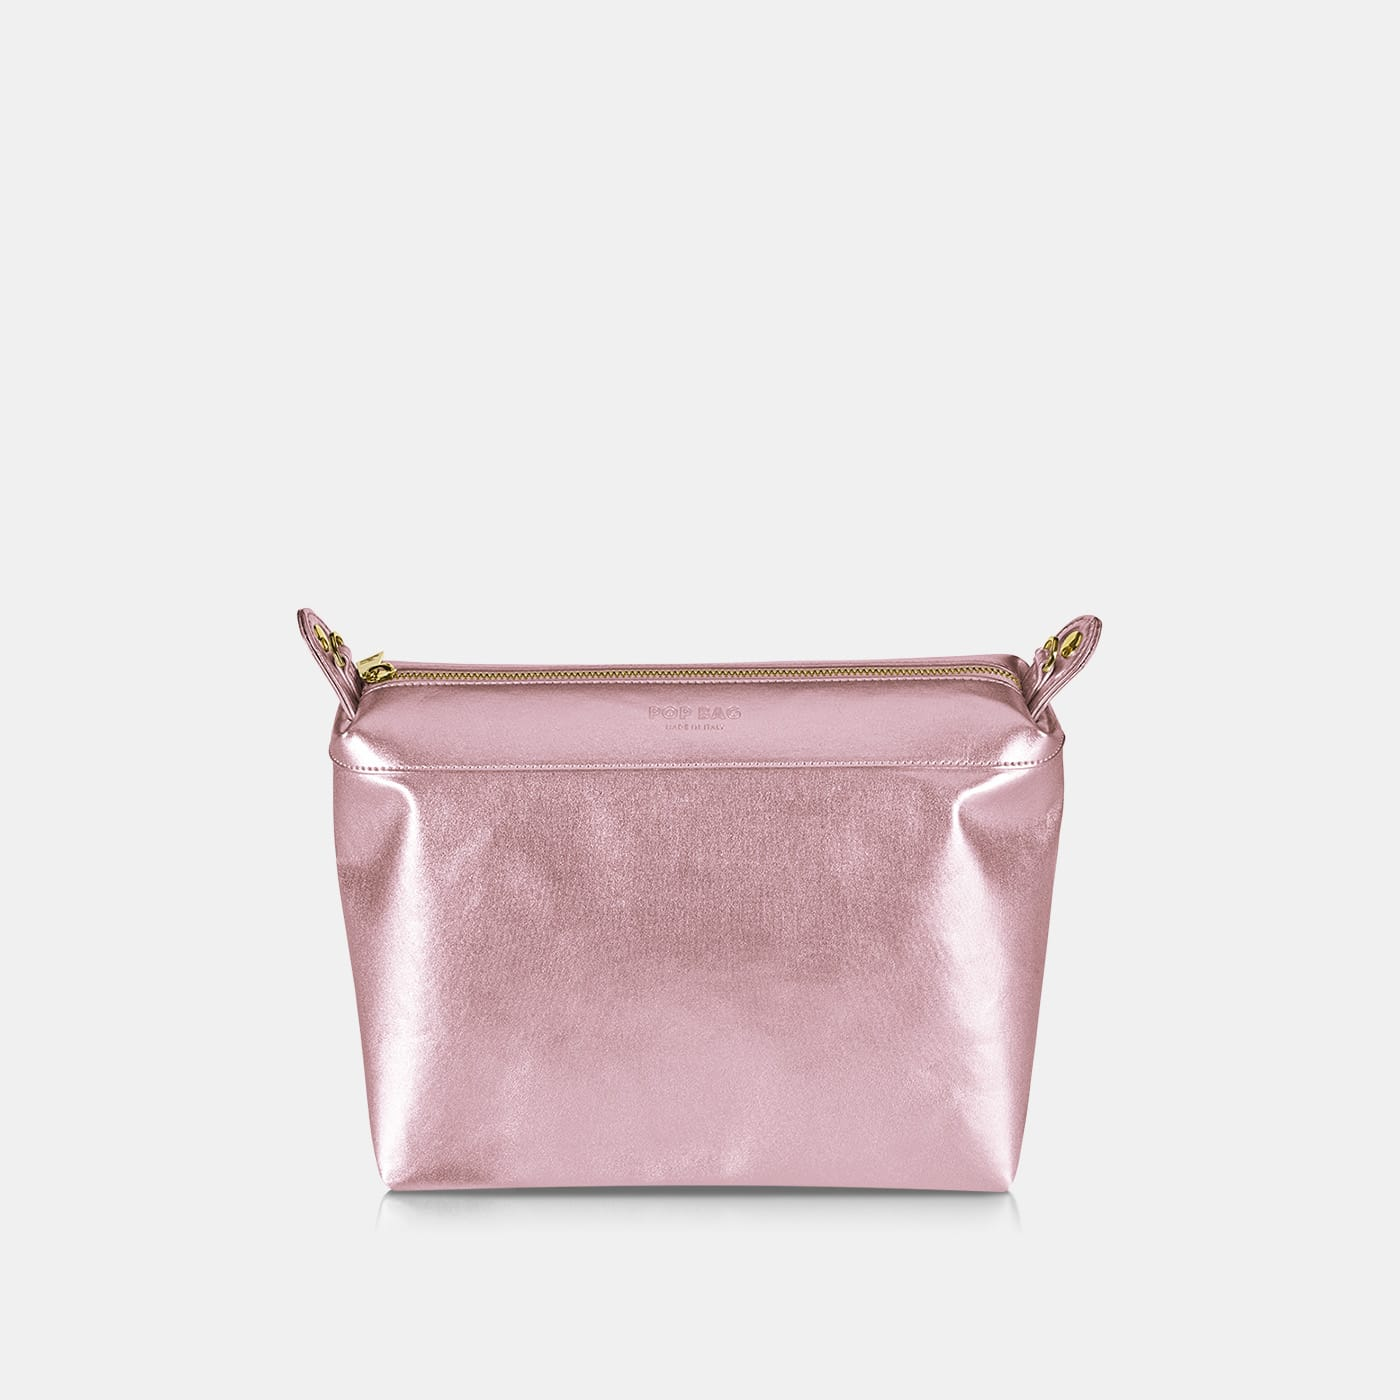 Bag In Bag - Metallic - Pink Metal - Small